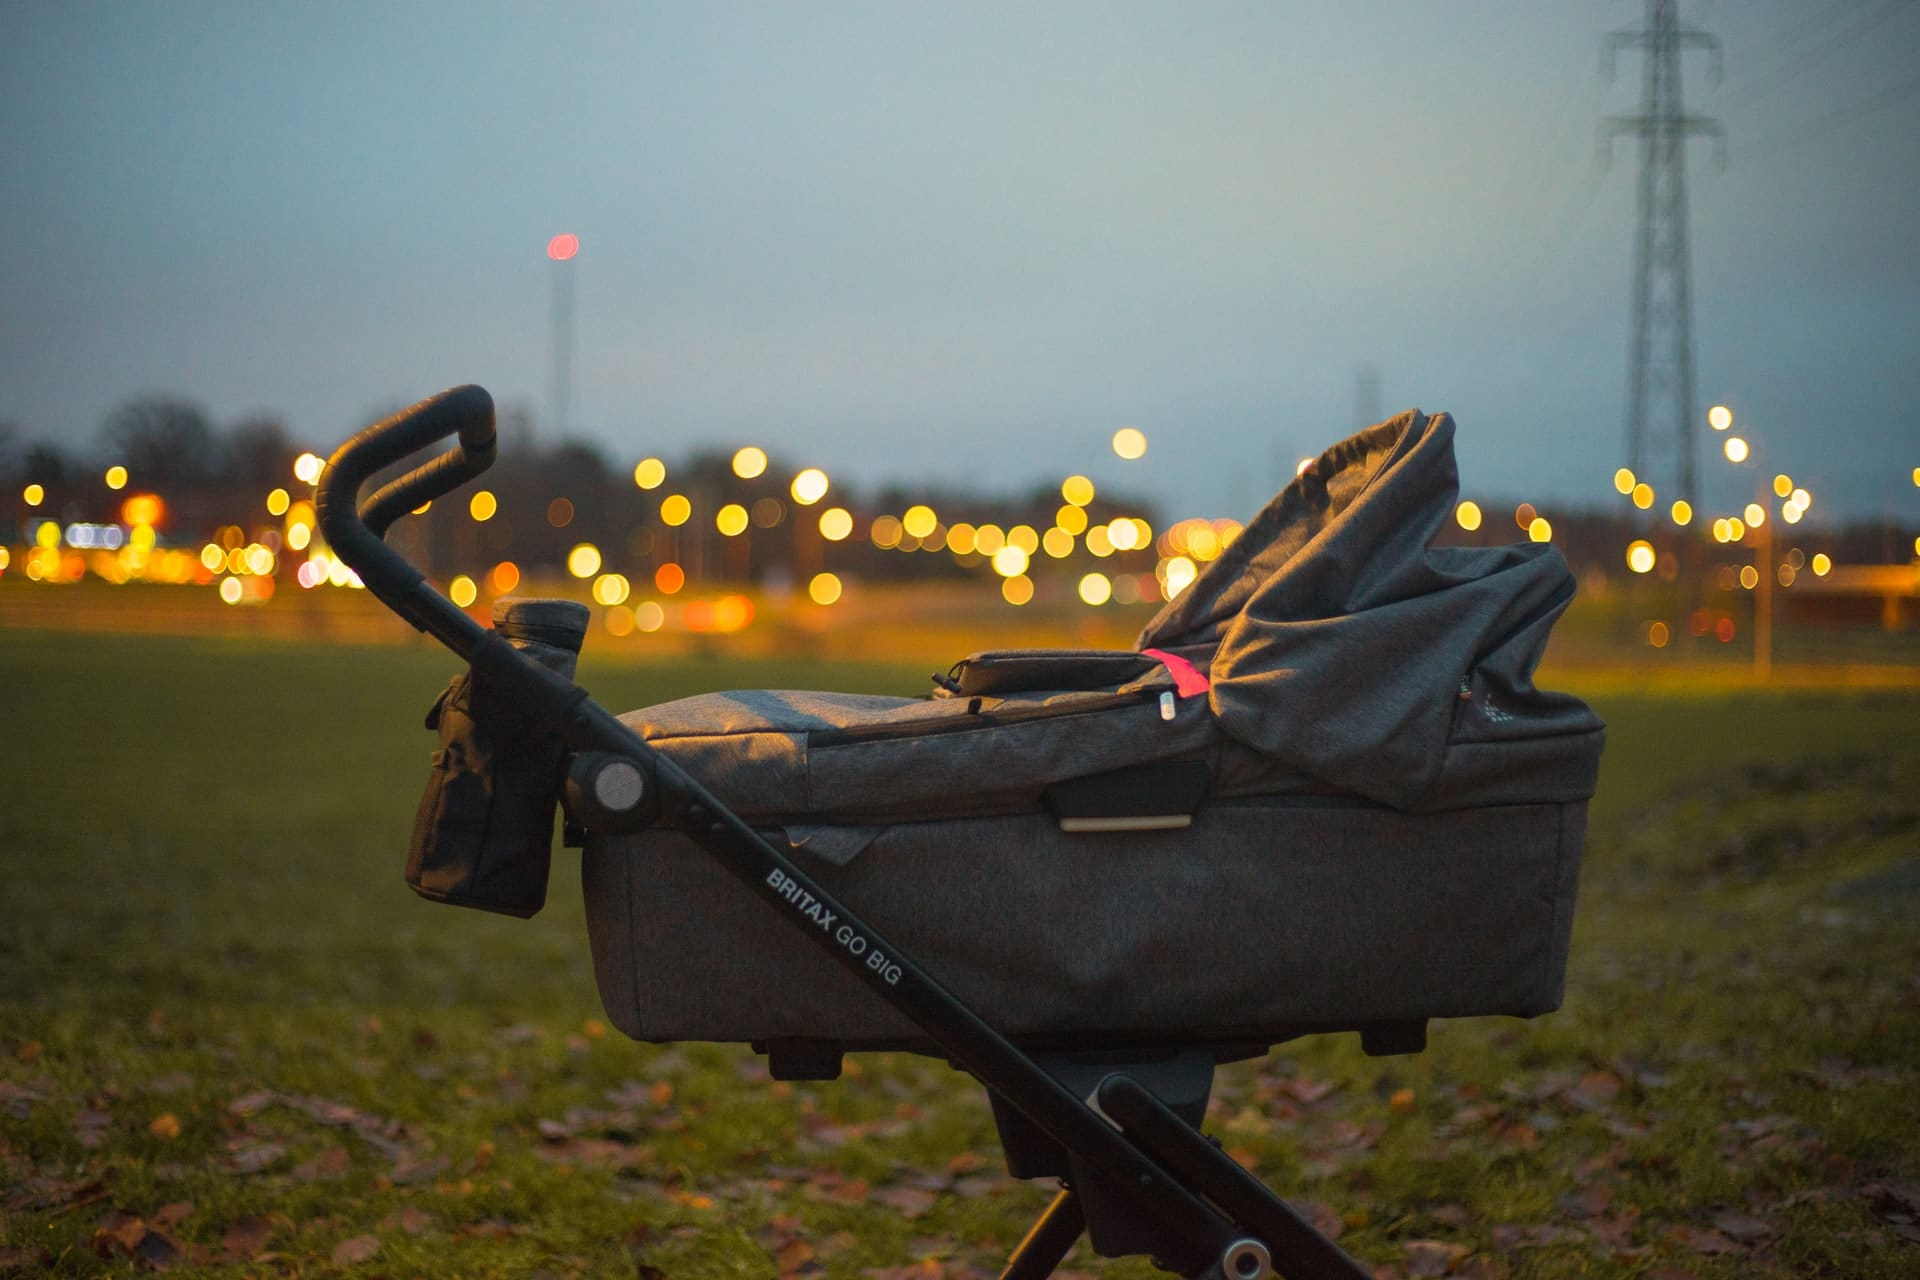 micael widell iESIEEShXuk unsplash - What are the Benefits of Baby Strollers?